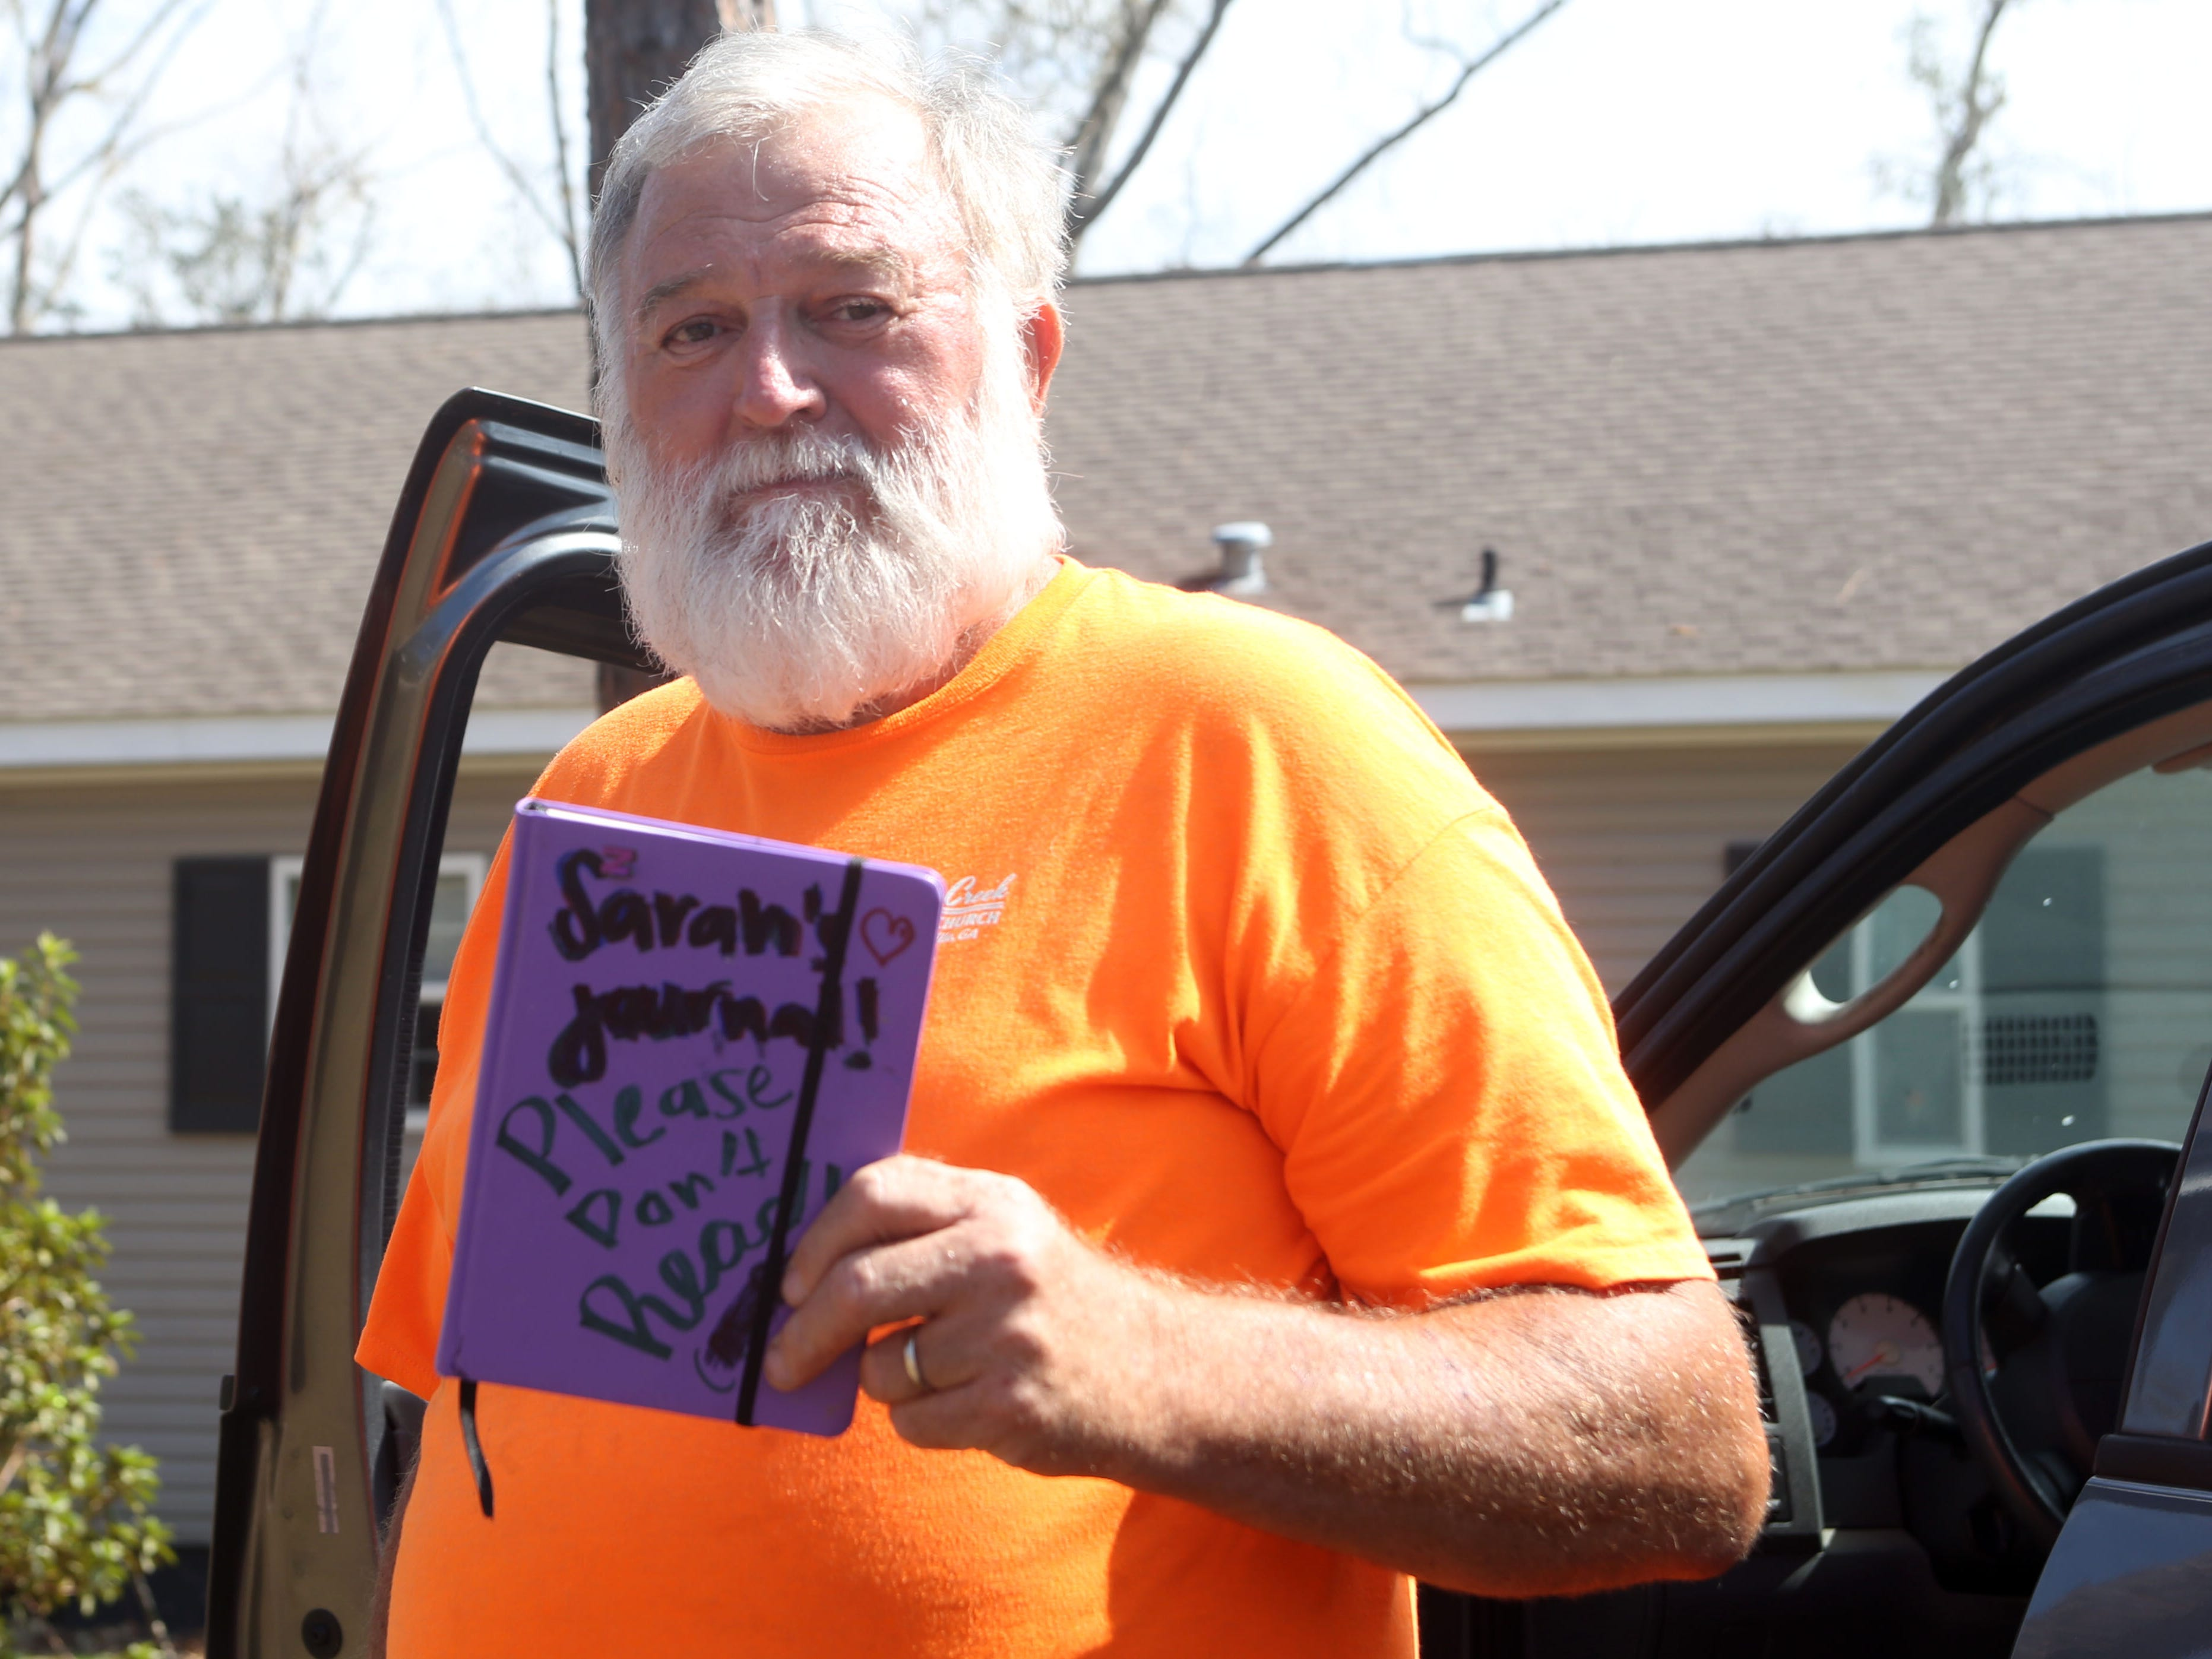 Eugene Radney, grandfather of Sarah Radney, an 11 year old girl who died during Hurricane Michael in Donalsonville, Ga., shows Sarah's journal on Thursday, Oct. 18, 2018.